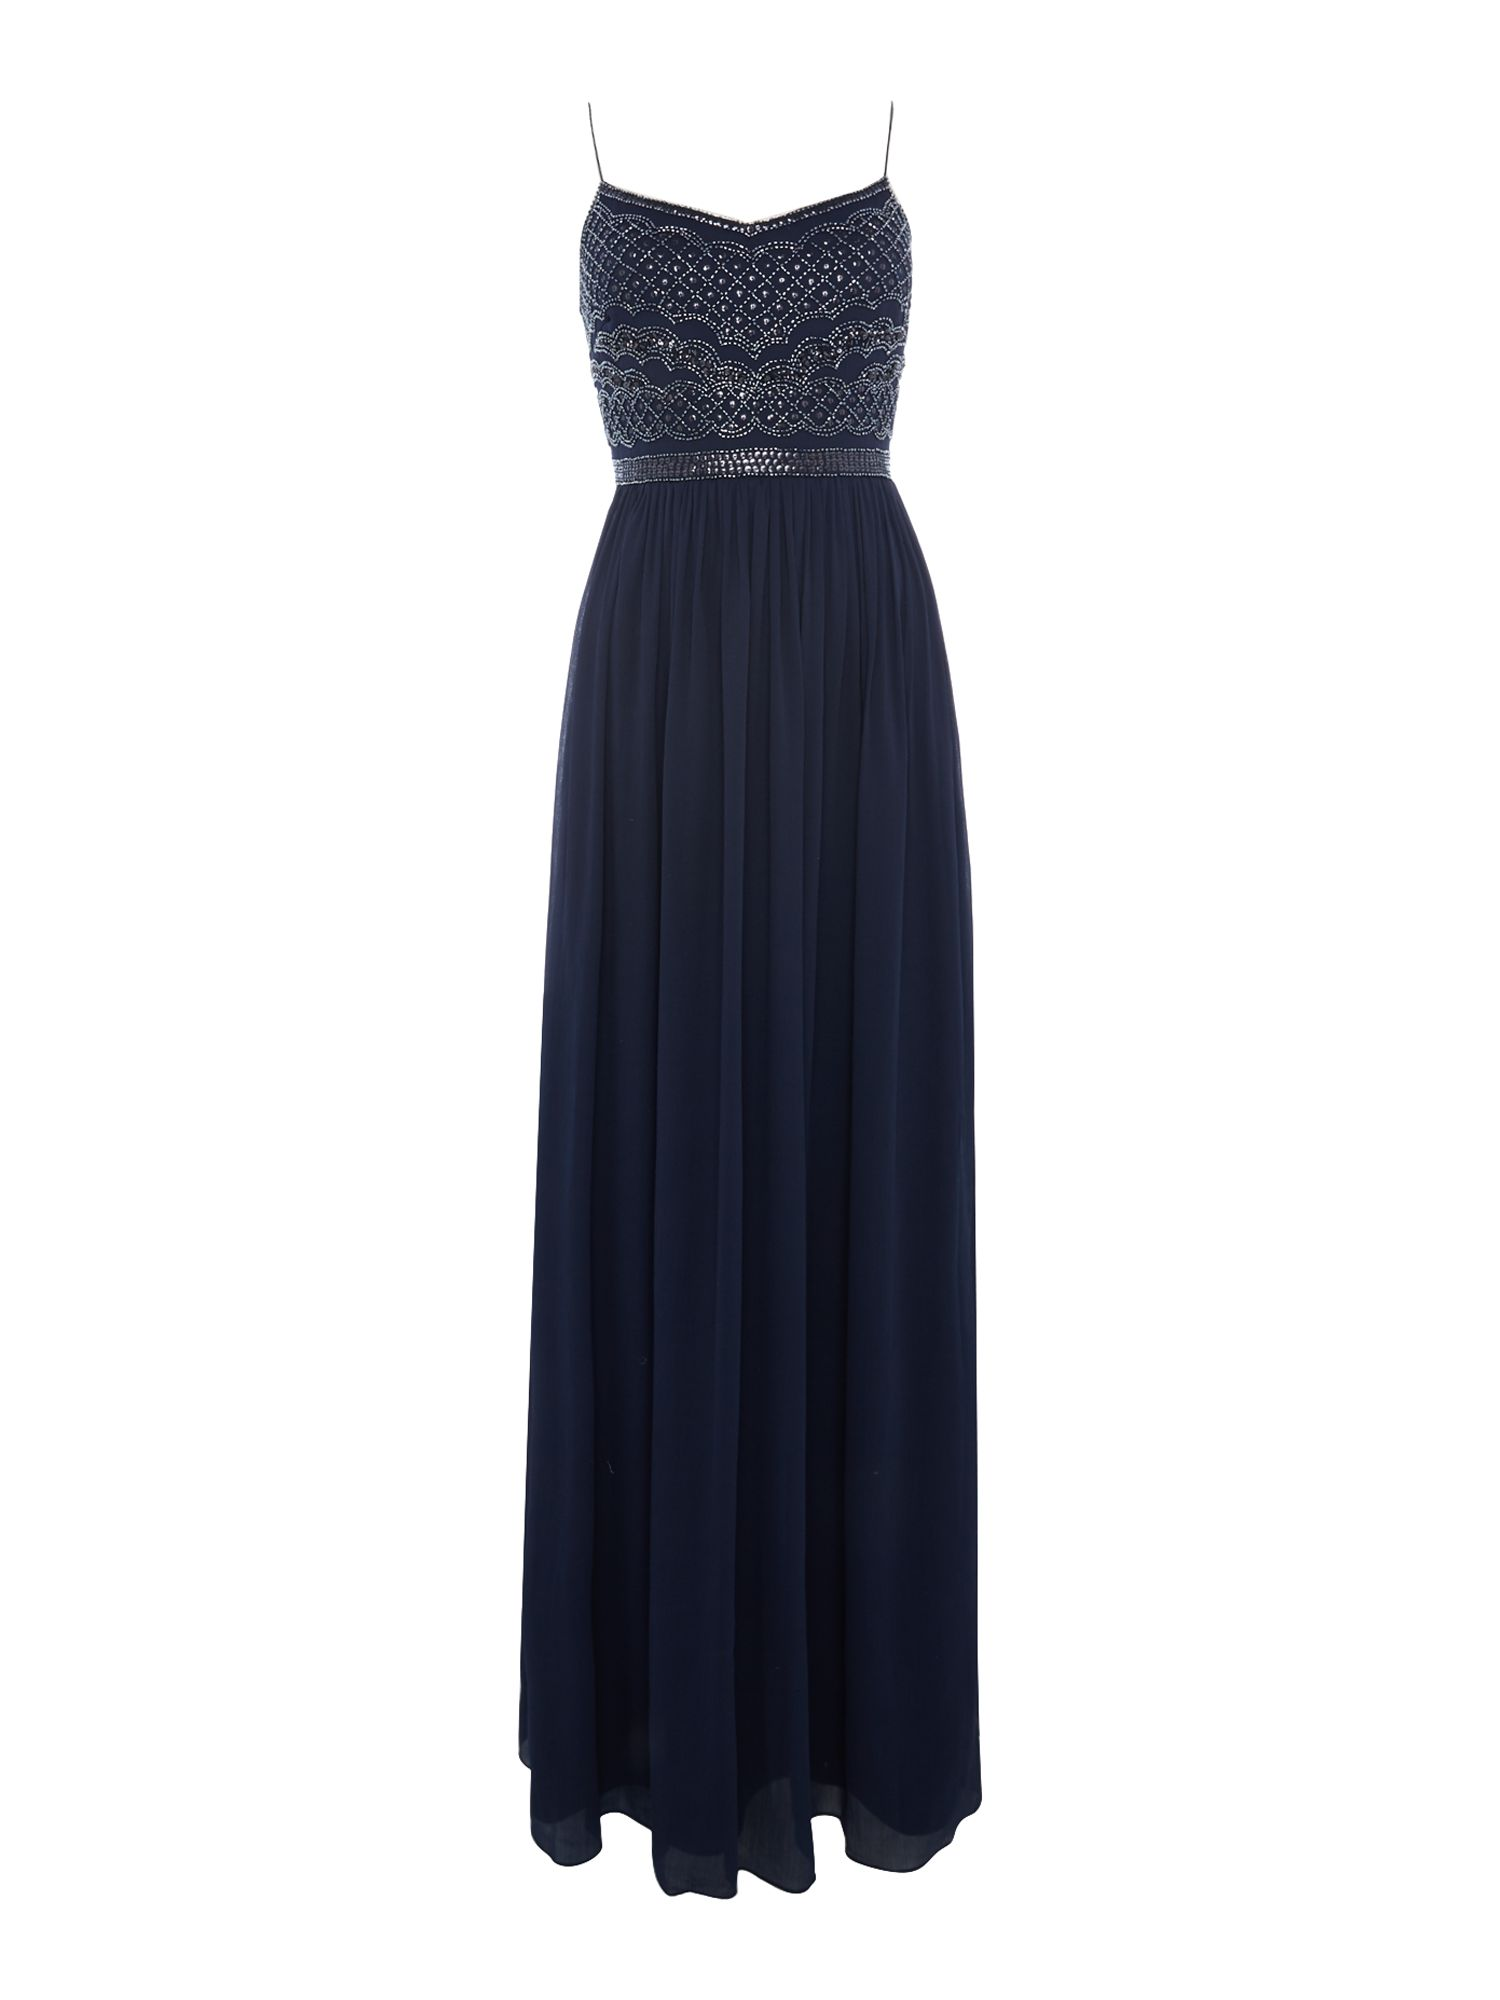 Adrianna Papell Beaded top gown with spaghetti straps, Midnight